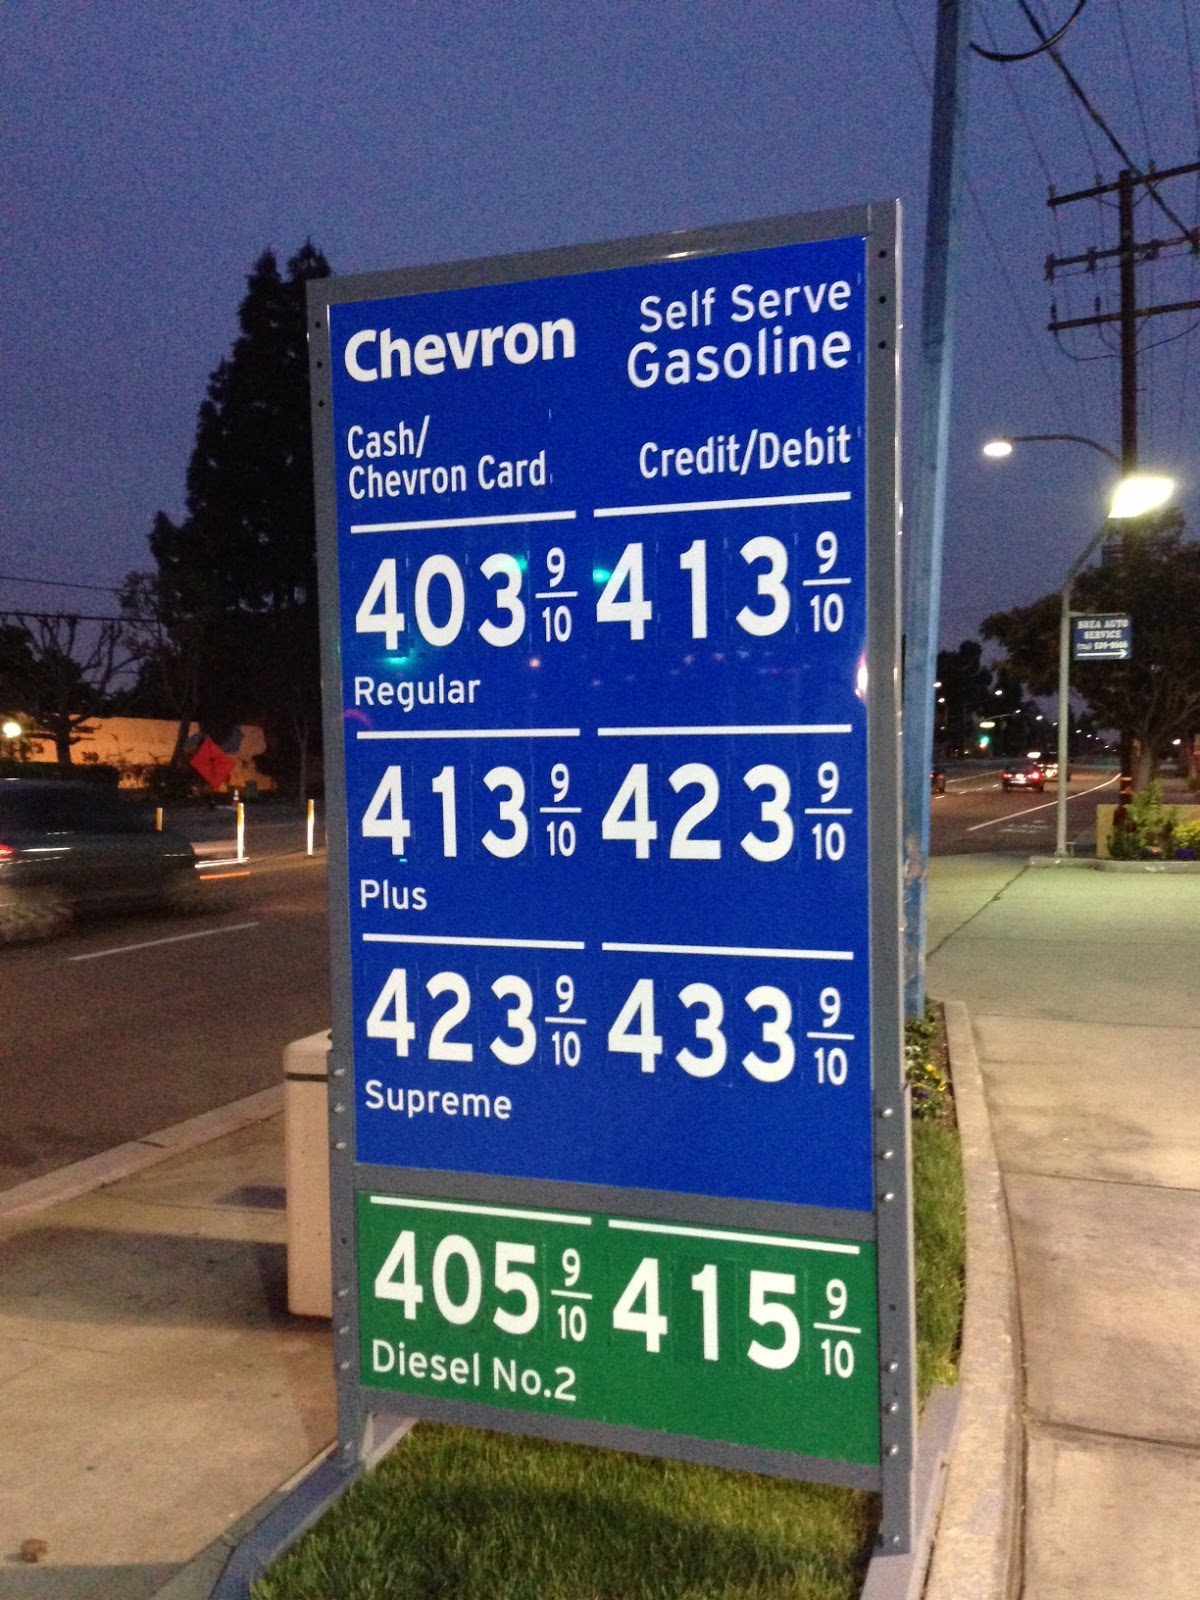 Arco Gas Prices >> united states - What does each of these fee terms mean ...